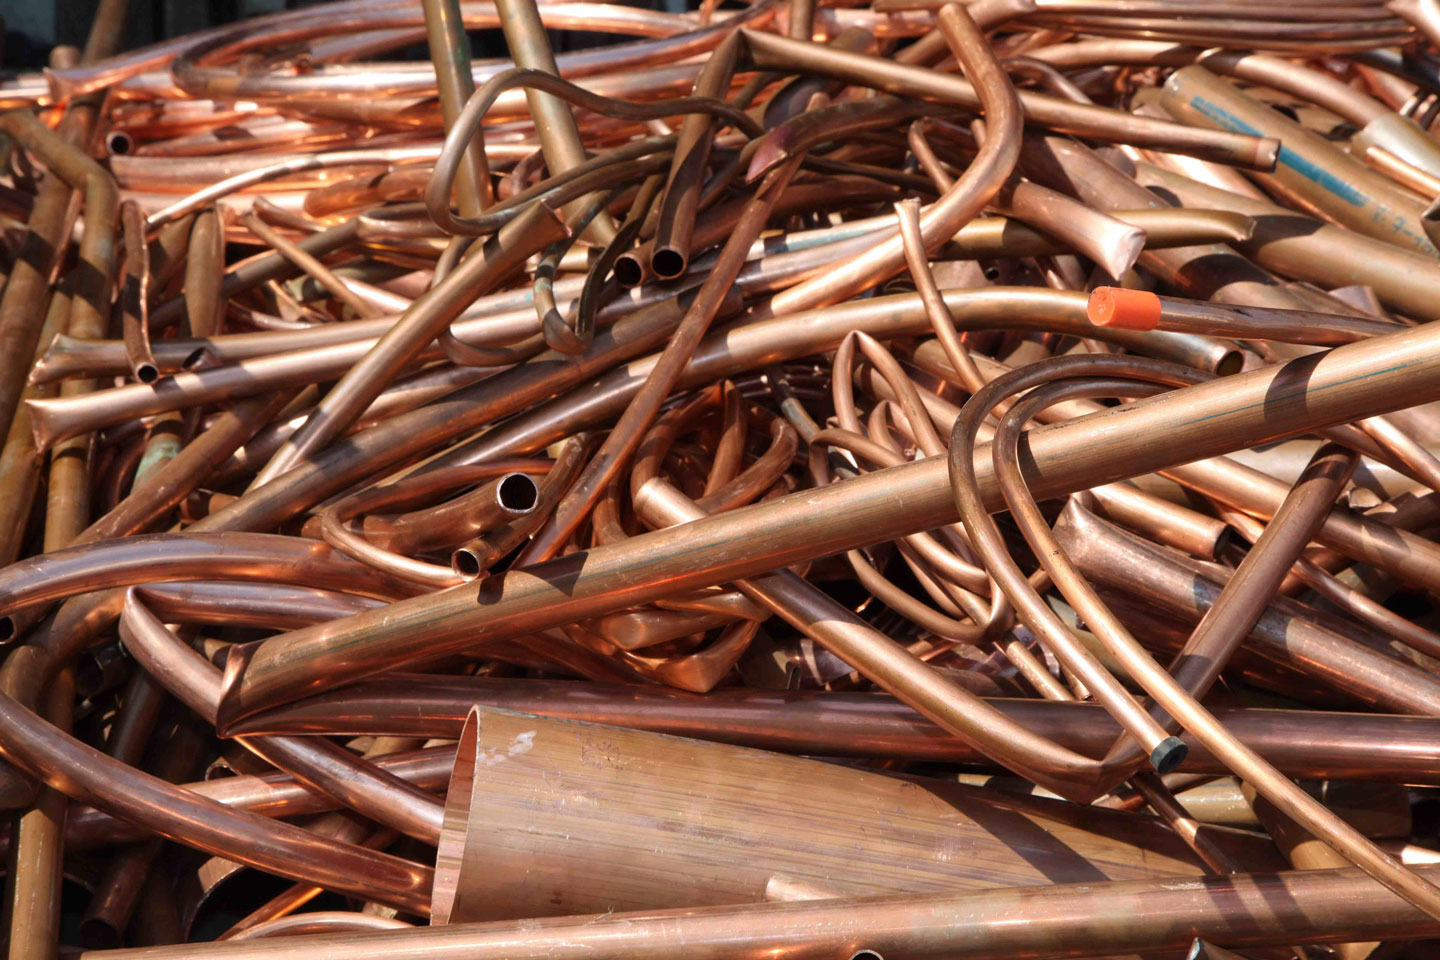 How Can Scrap Metal Help People And The Environment